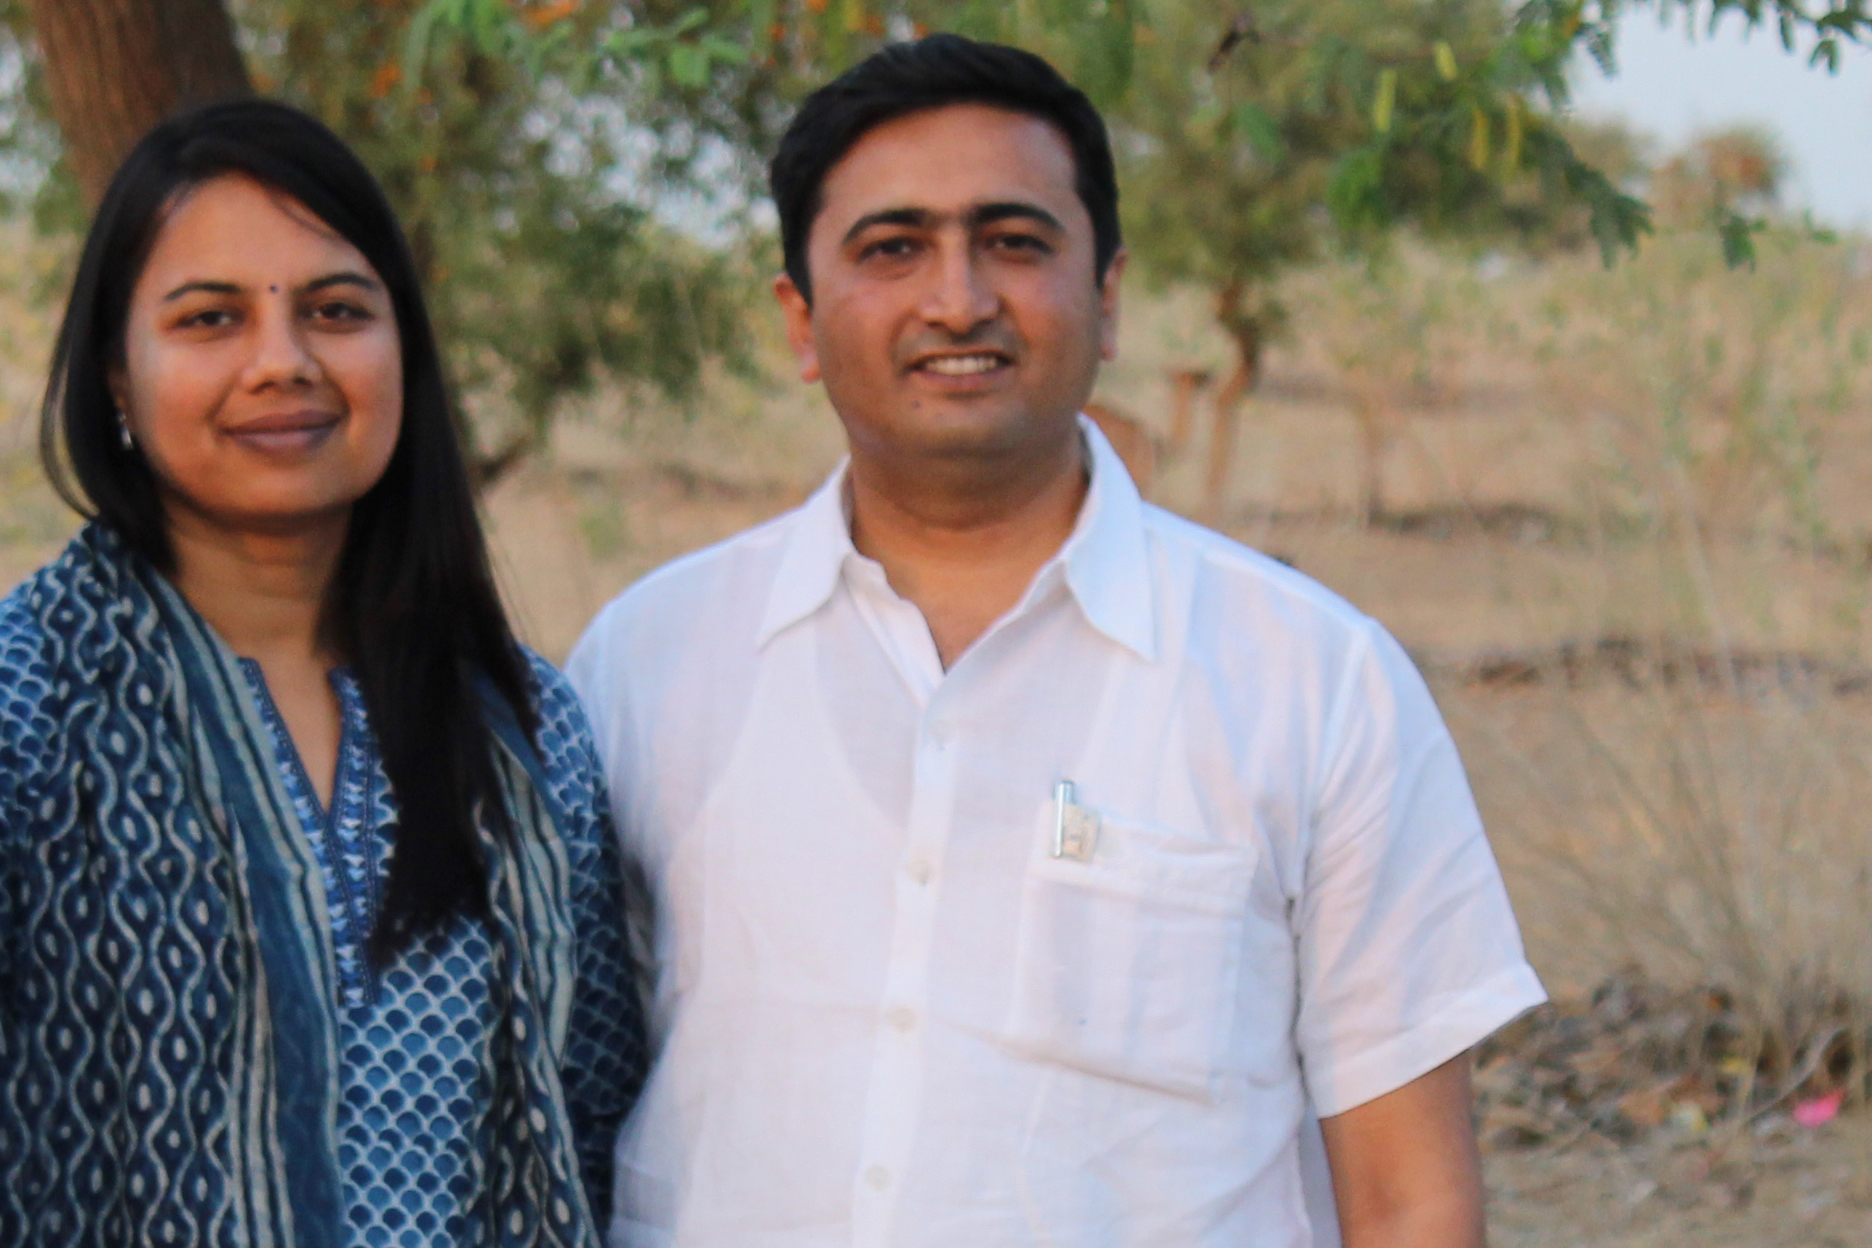 Rashmi and Devendra in the desert region of India, near the Pakistan border.